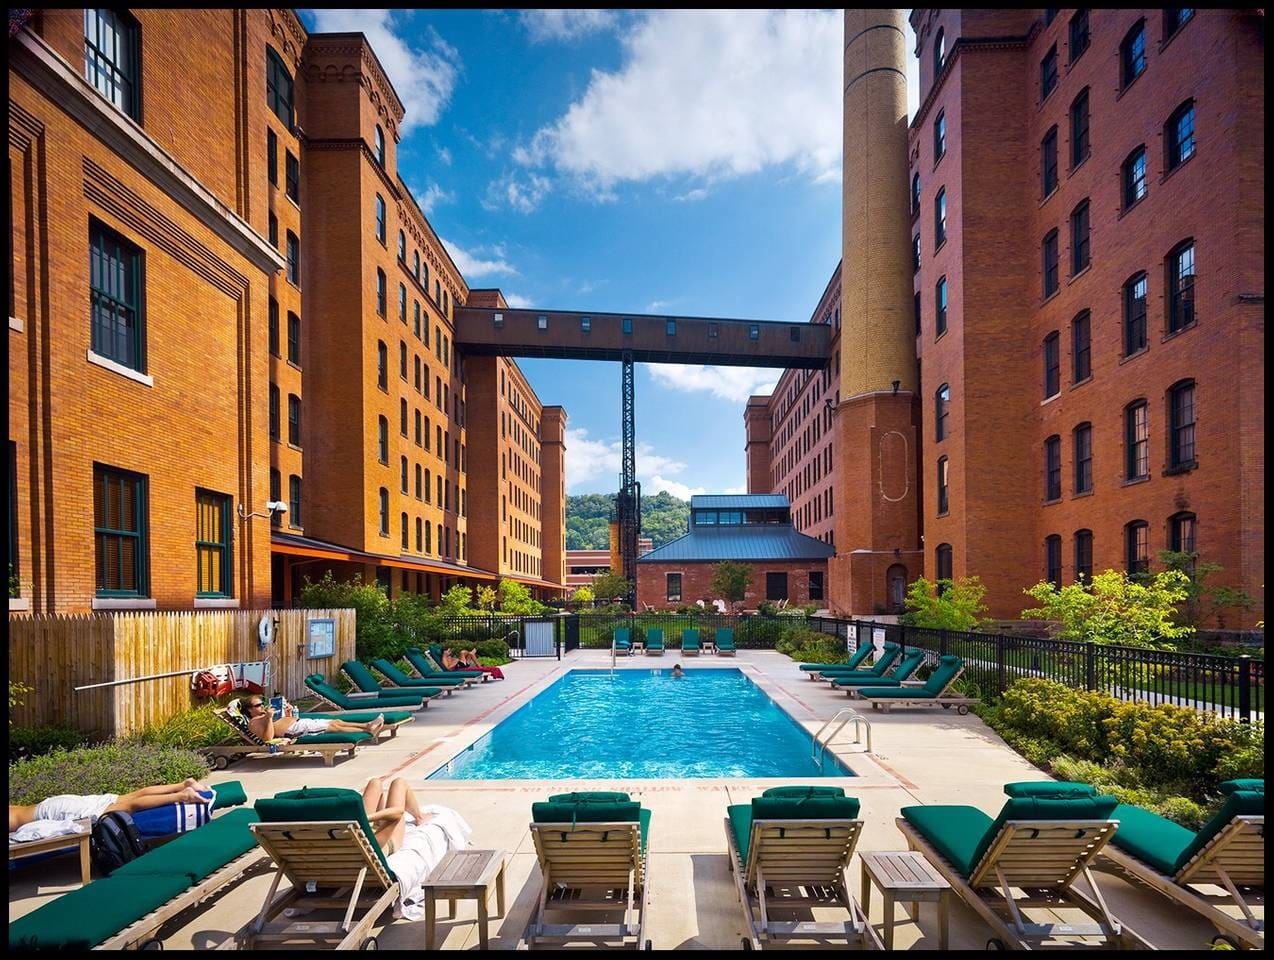 The outdoor pool is available for all guests.